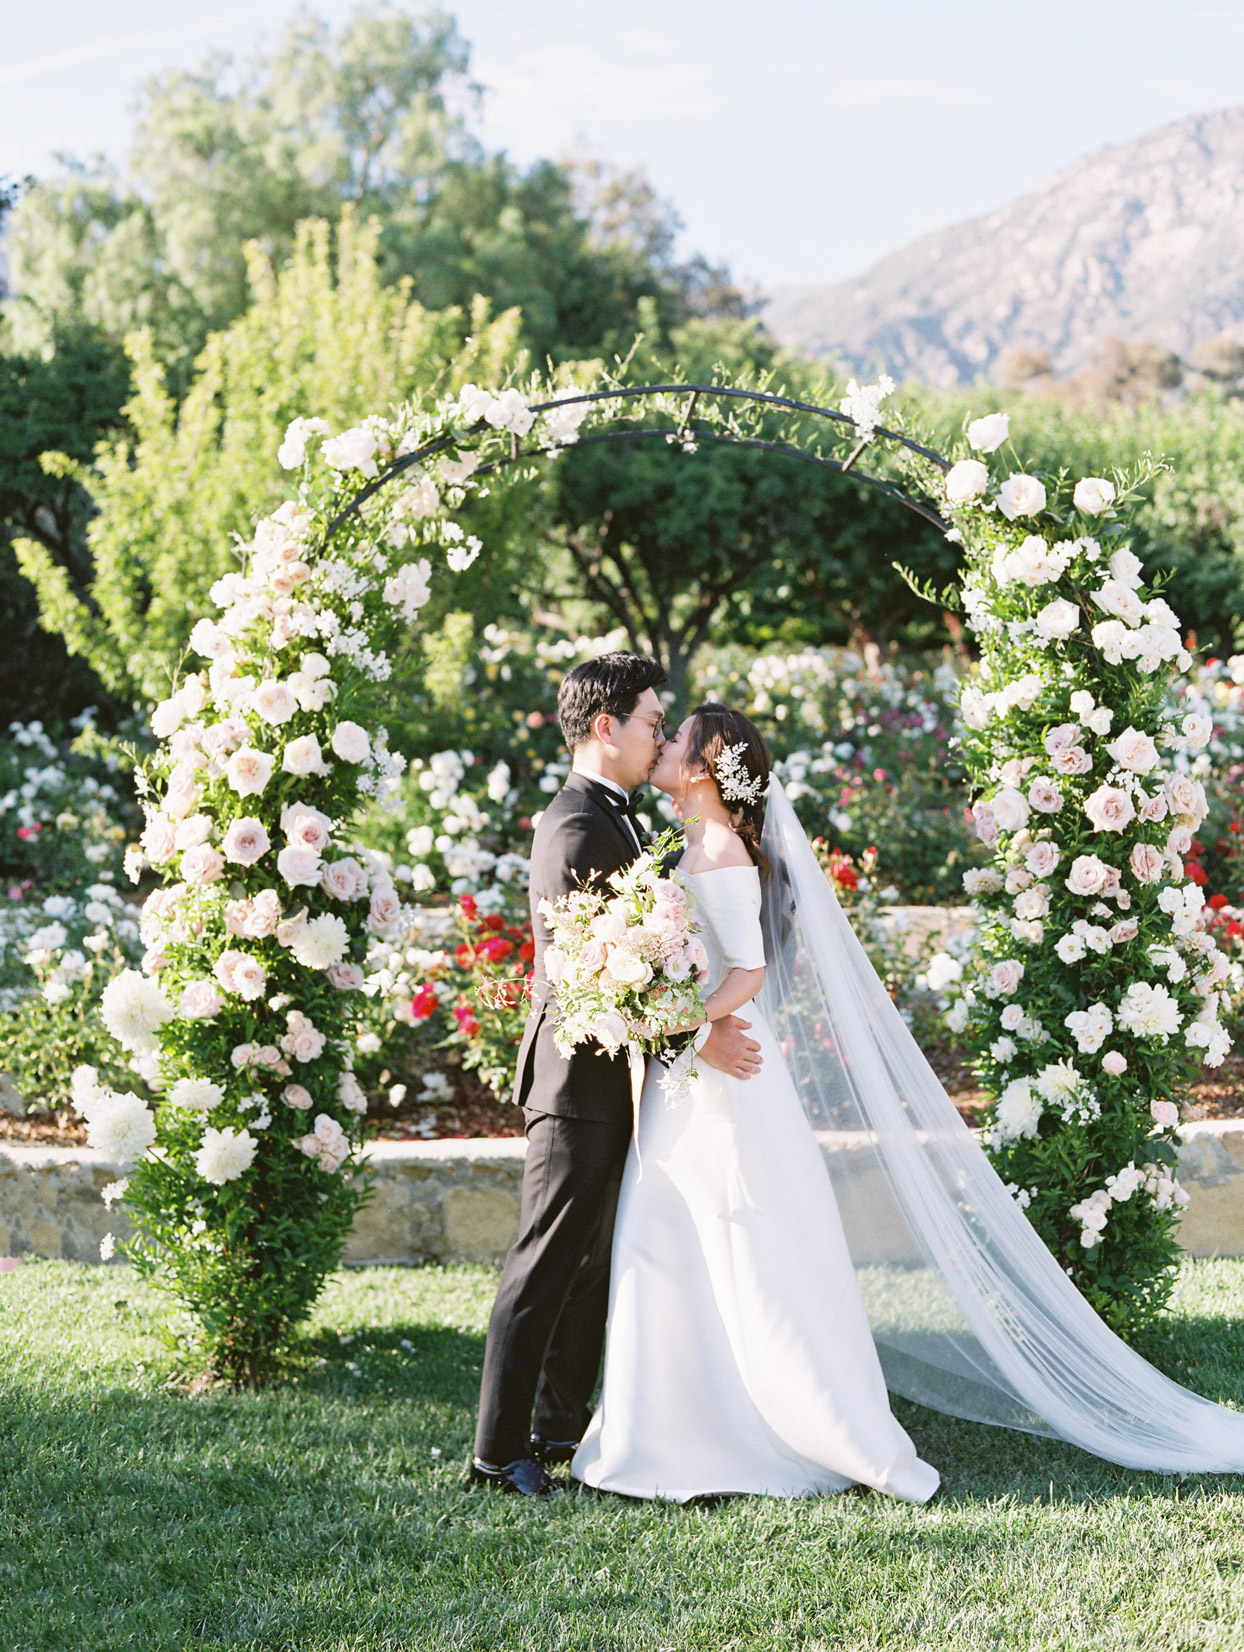 wedding couple first kiss under floral ceremony arch